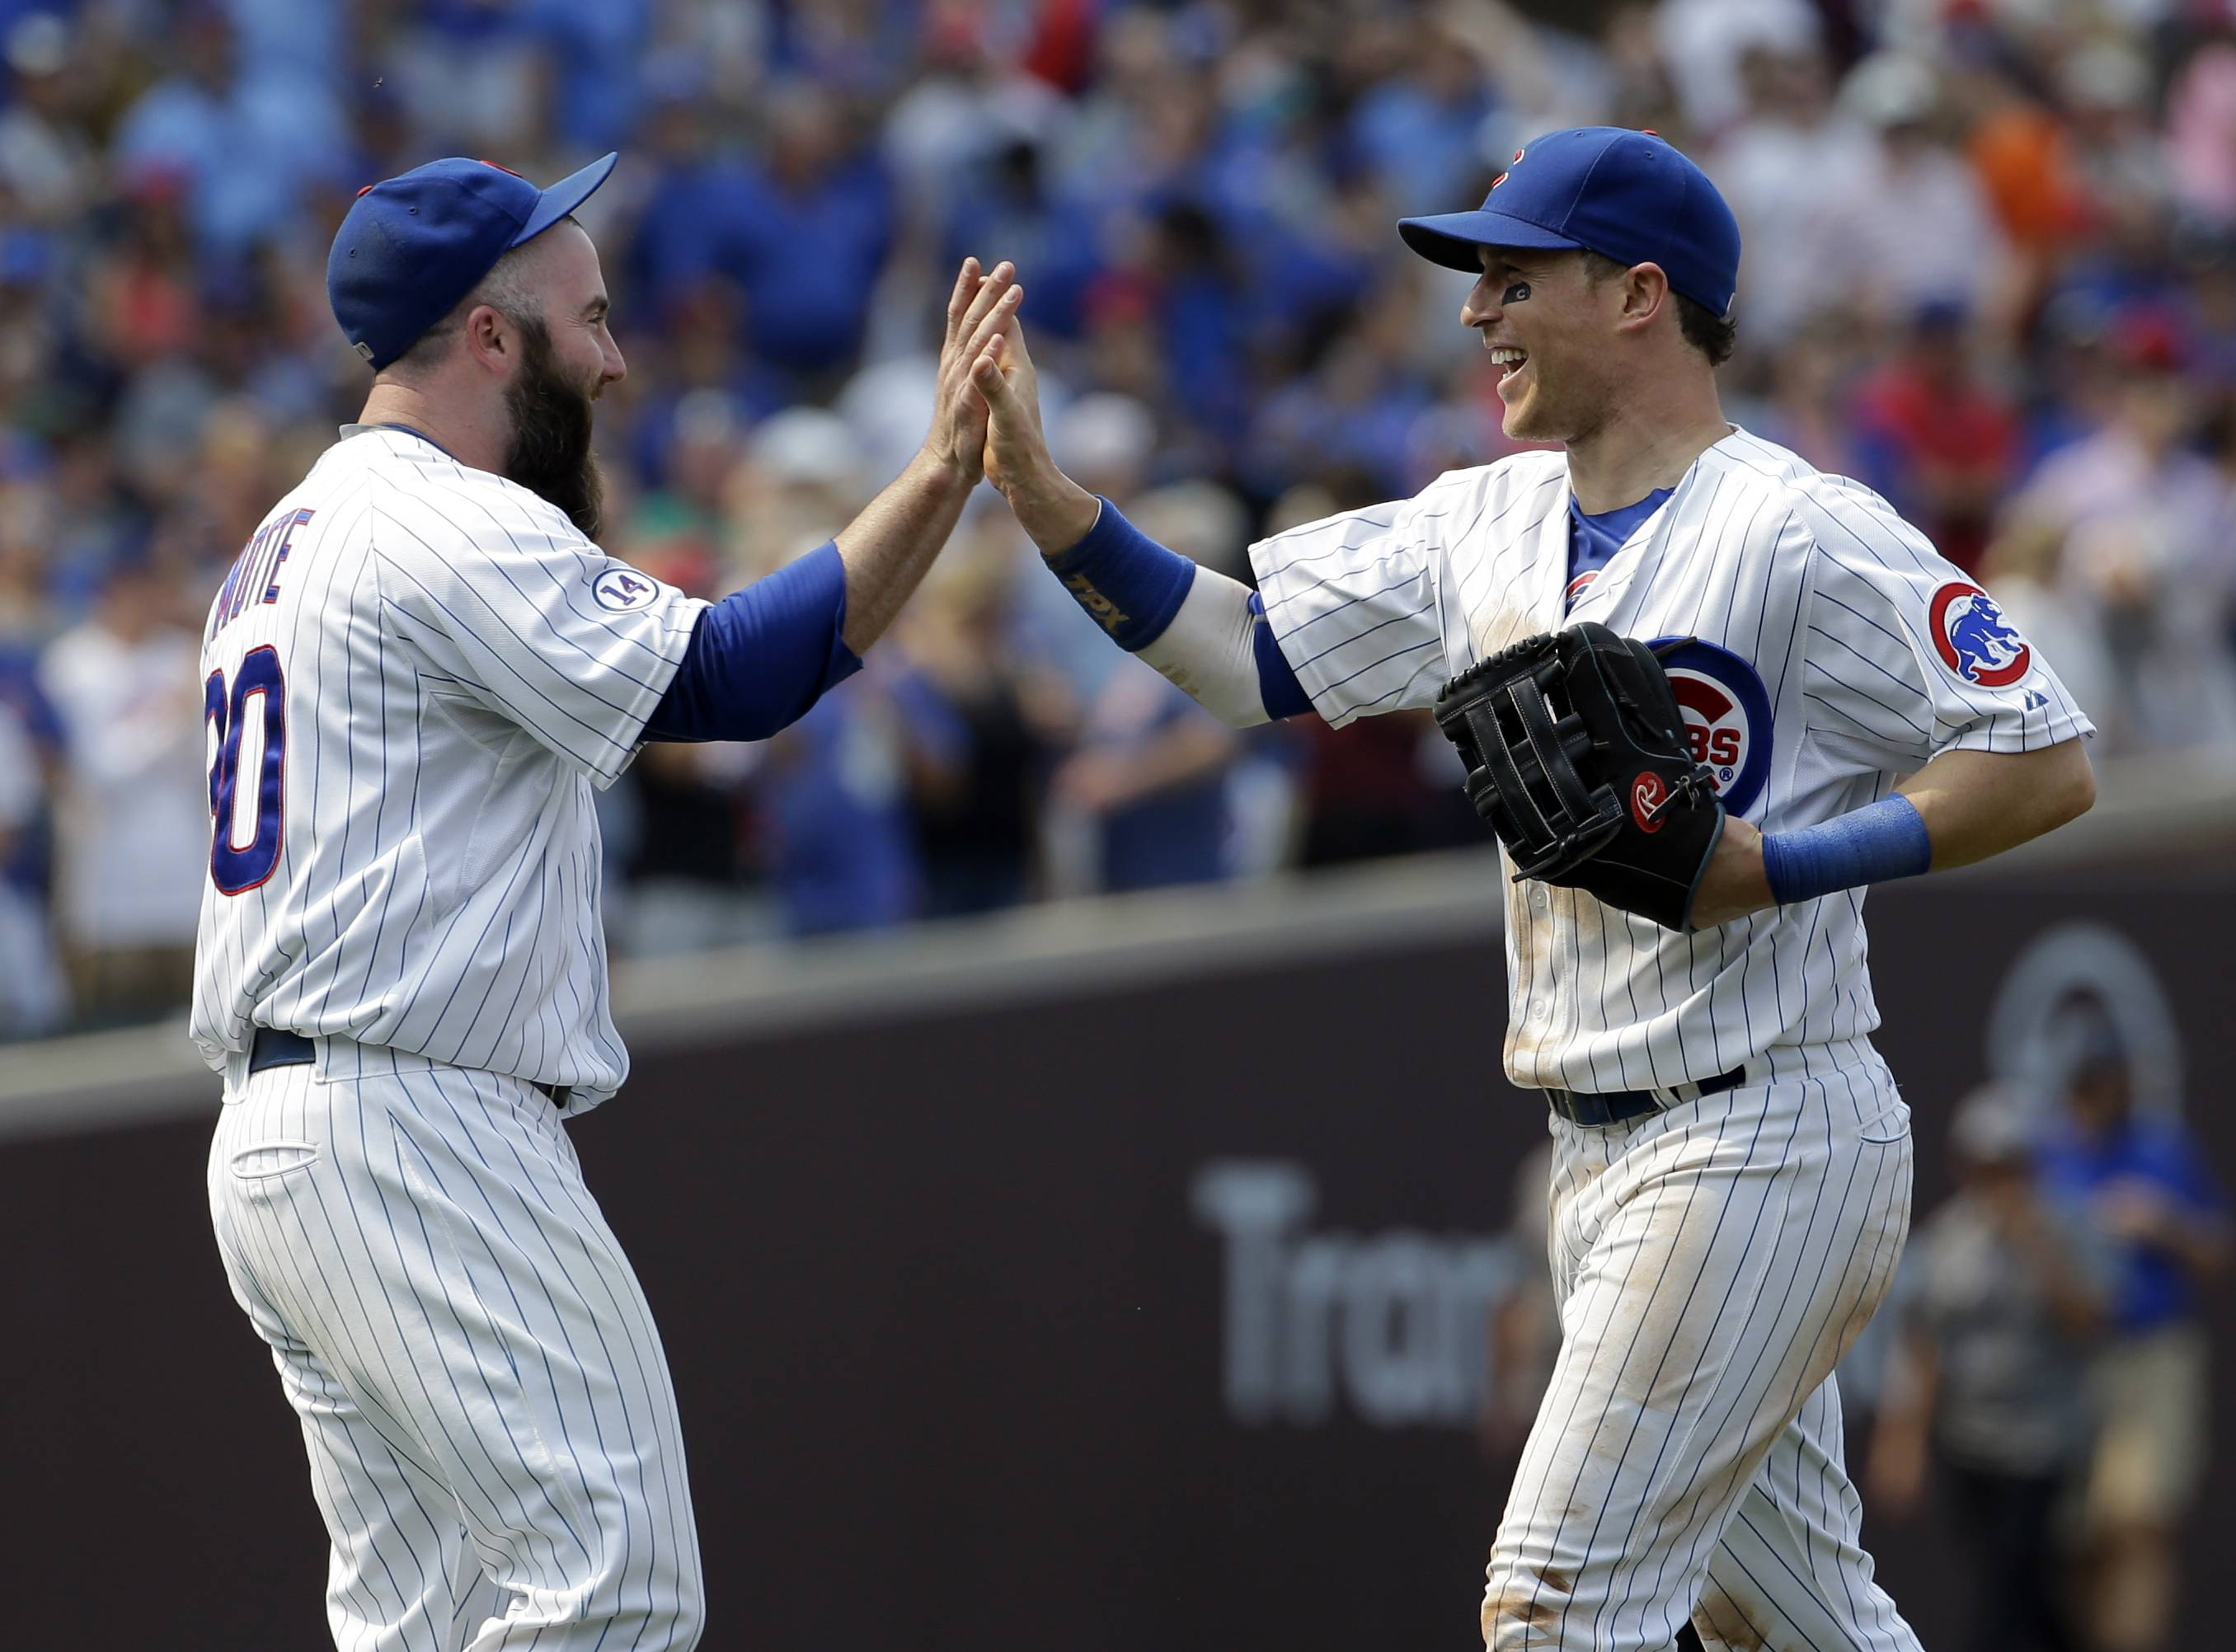 The Chicago Cubs' Chris Coghlan, right, celebrates with relief pitcher Jason Motte after the Chicago Cubs defeated the Miami Marlins 2-0 in a baseball game Sunday, July 5, 2015, in Chicago. The Cubs won 2-0.